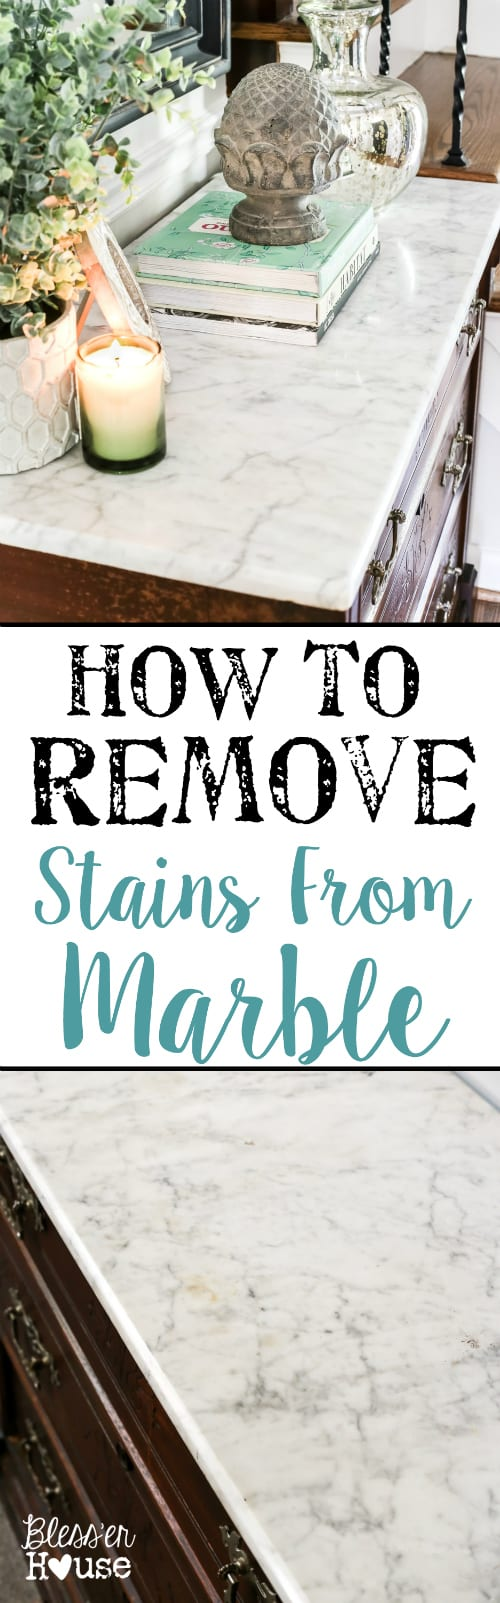 How to Remove Stains from Marble + Foyer Chest Makeover | blesserhouse.com - A quick and simple tutorial for removing stains from white marble using kitchen & first aid supplies, plus a Victorian chest makeover and foyer update.